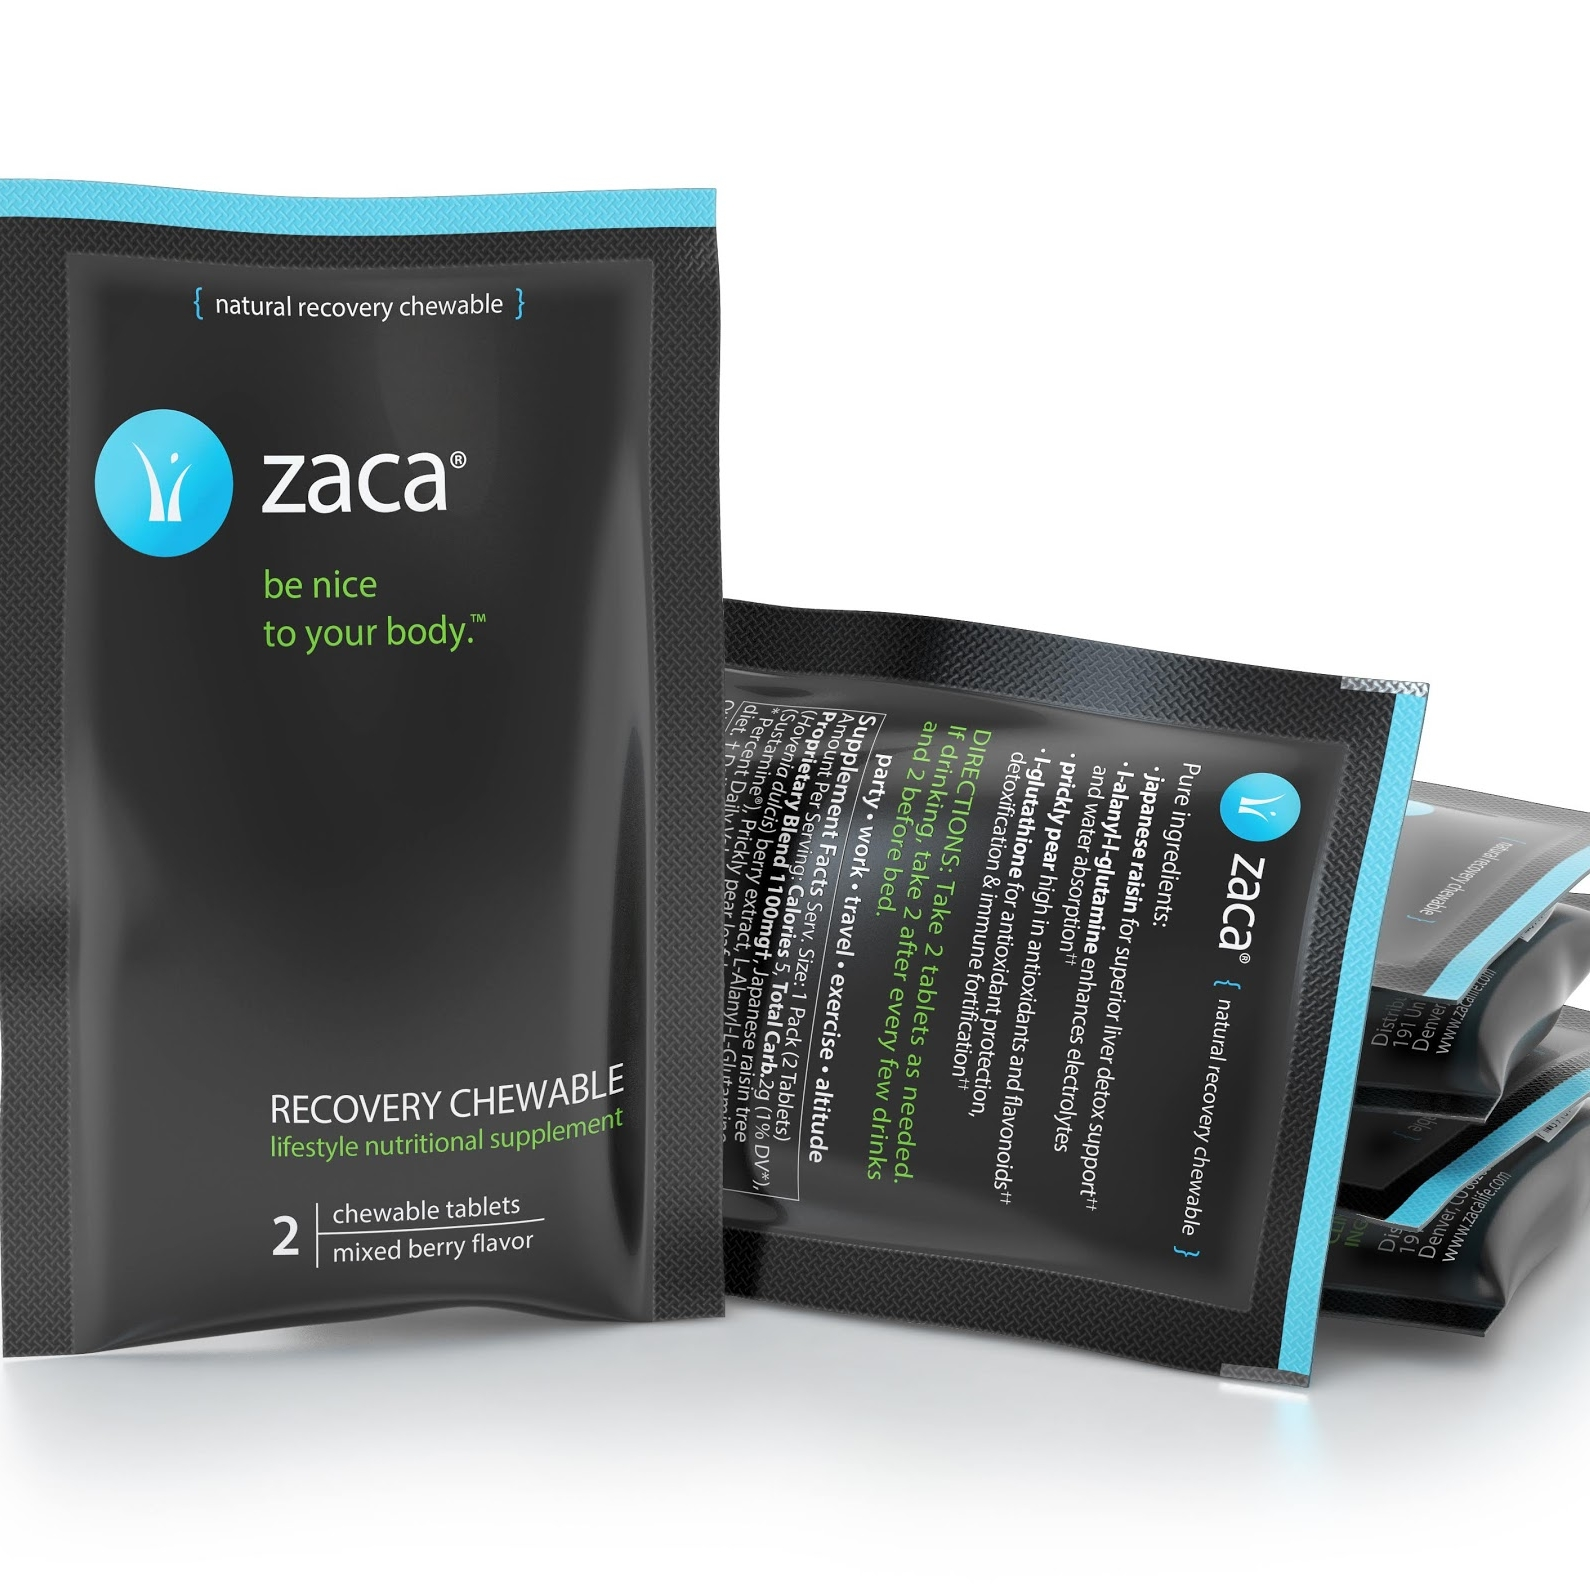 Zaca, $20.99 for 6 pack